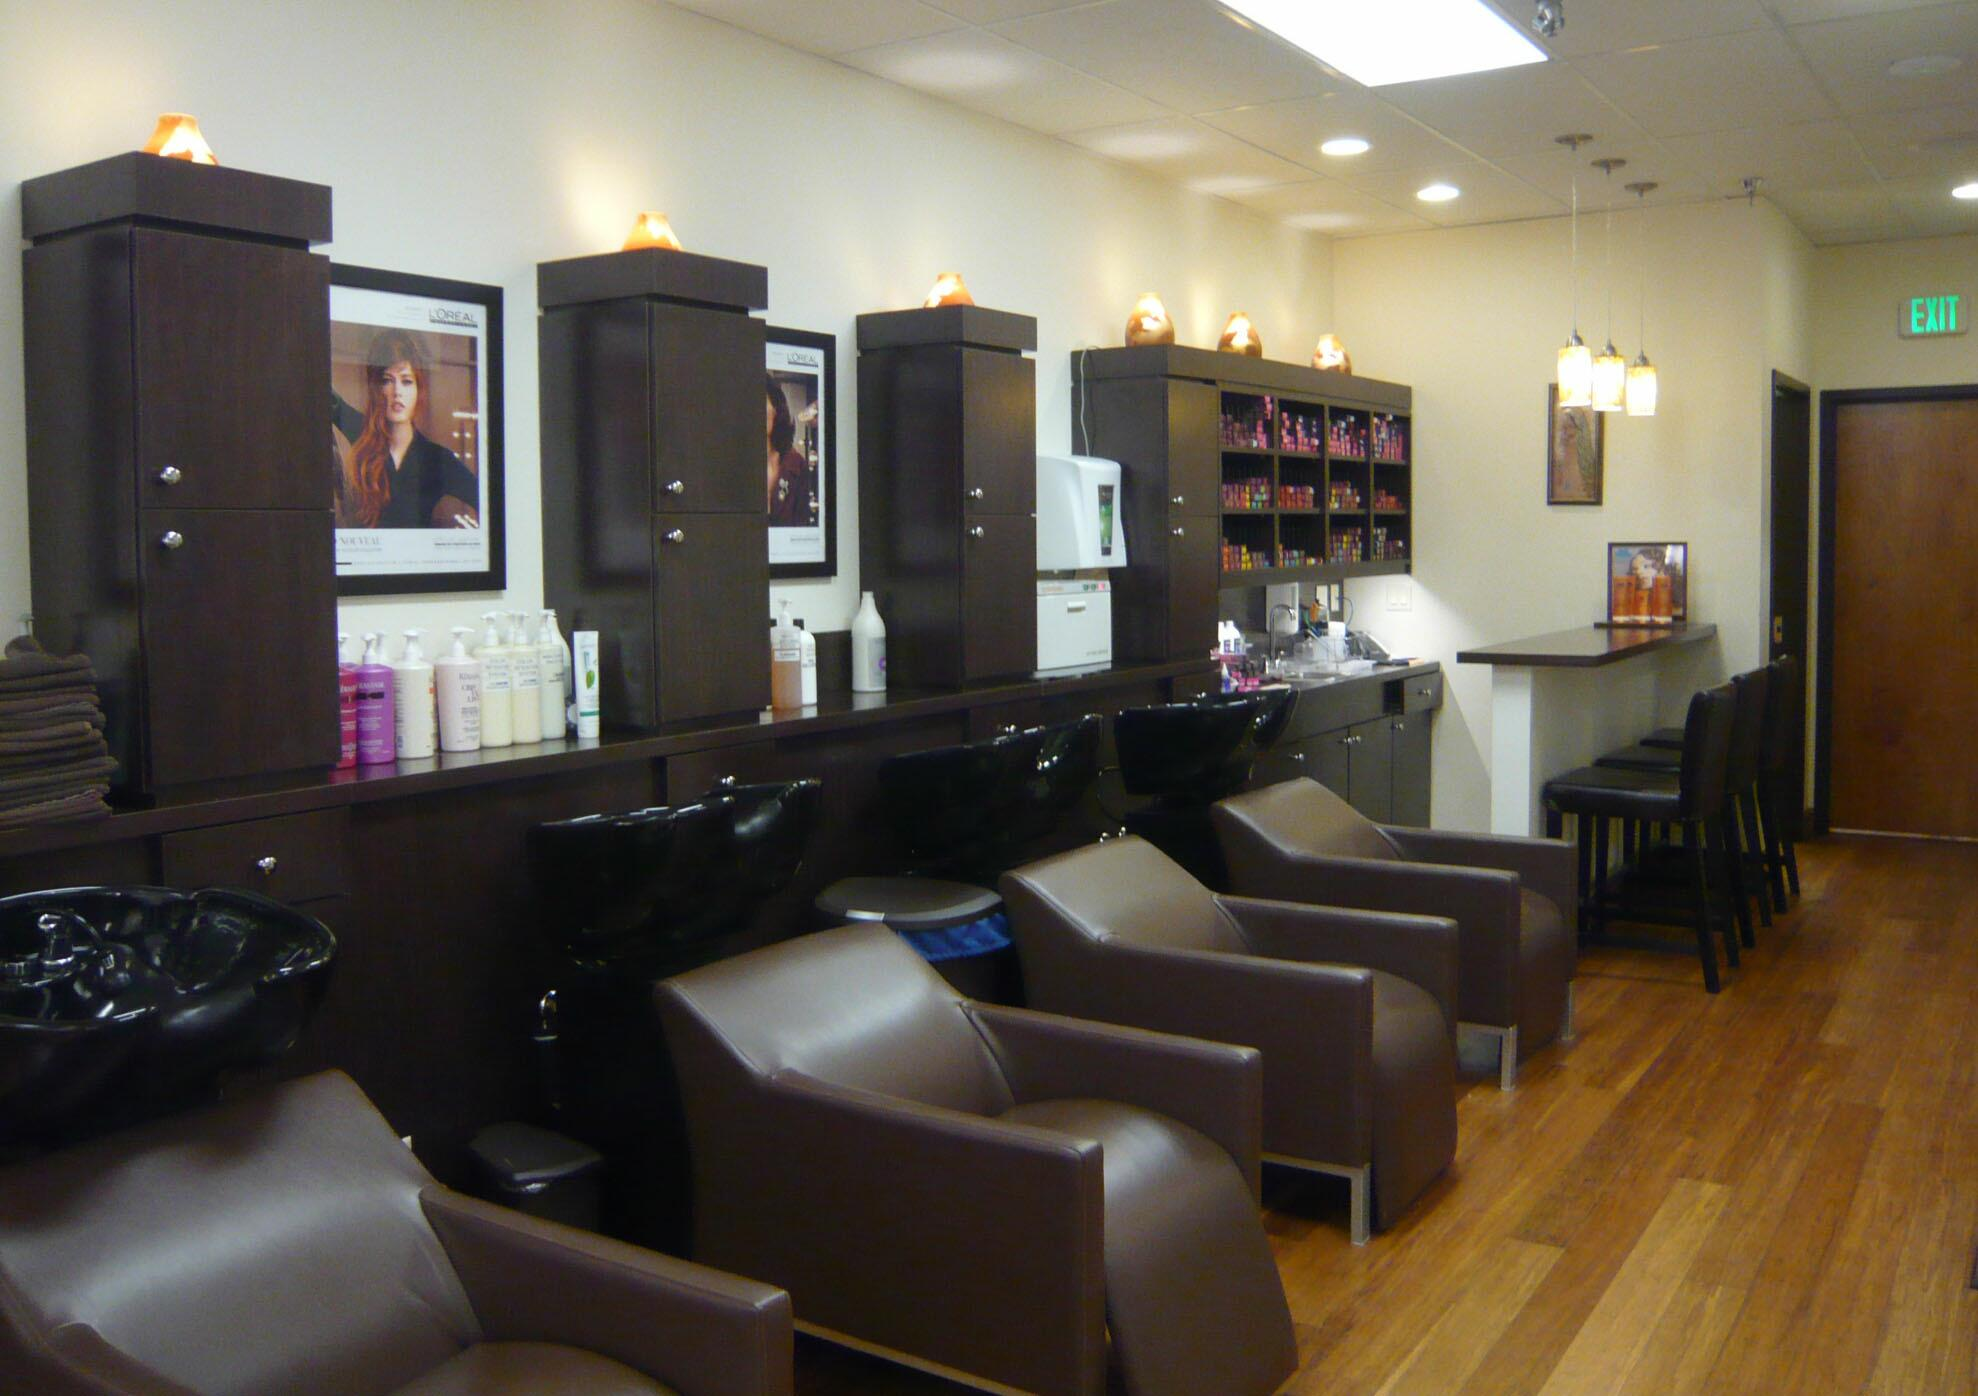 lutherville timonium salon craft hair salon implements zero ammonia - Salon Modern Evintage